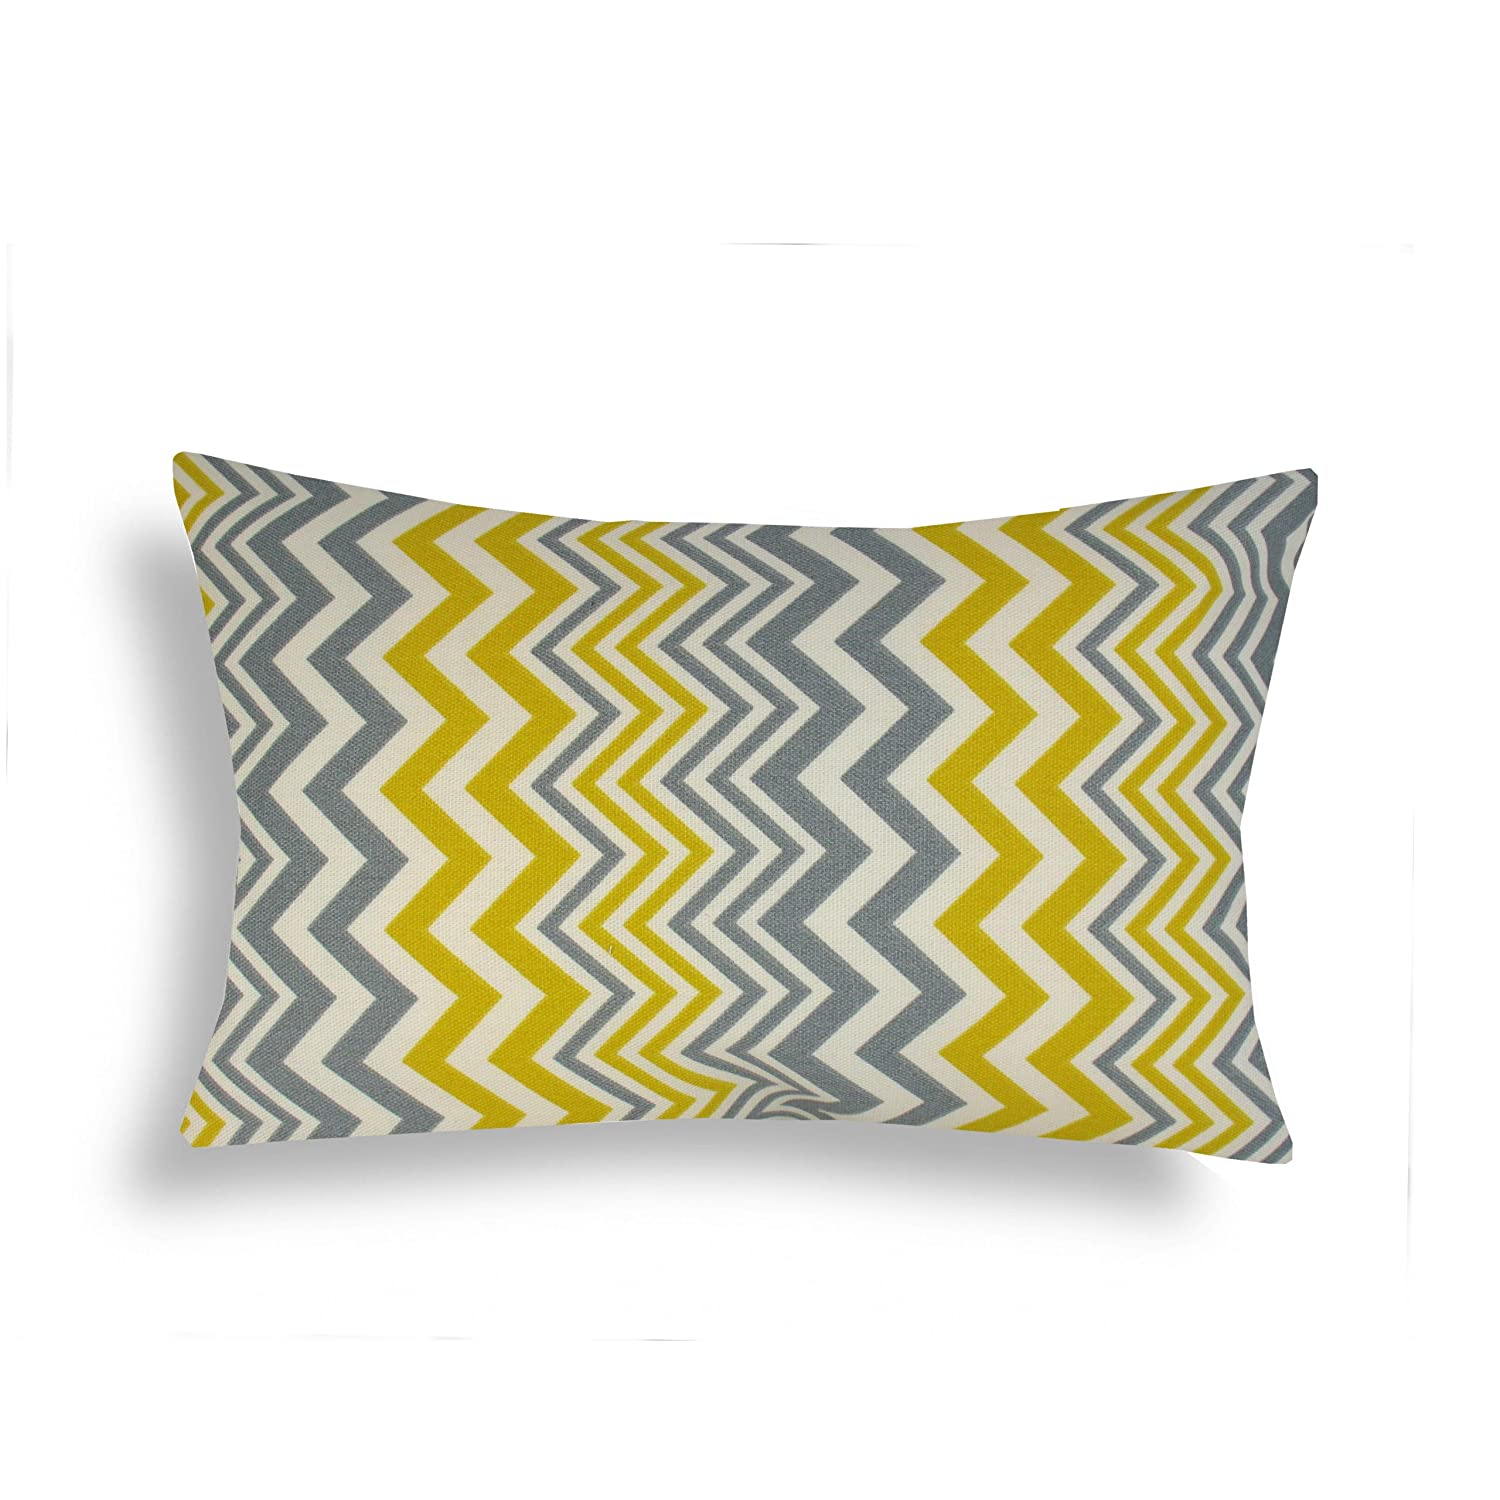 handwoven and id furniture in f more pillow throws blue yellow at master indian orange for pillows lumbar beige green sale brown collectibles textiles